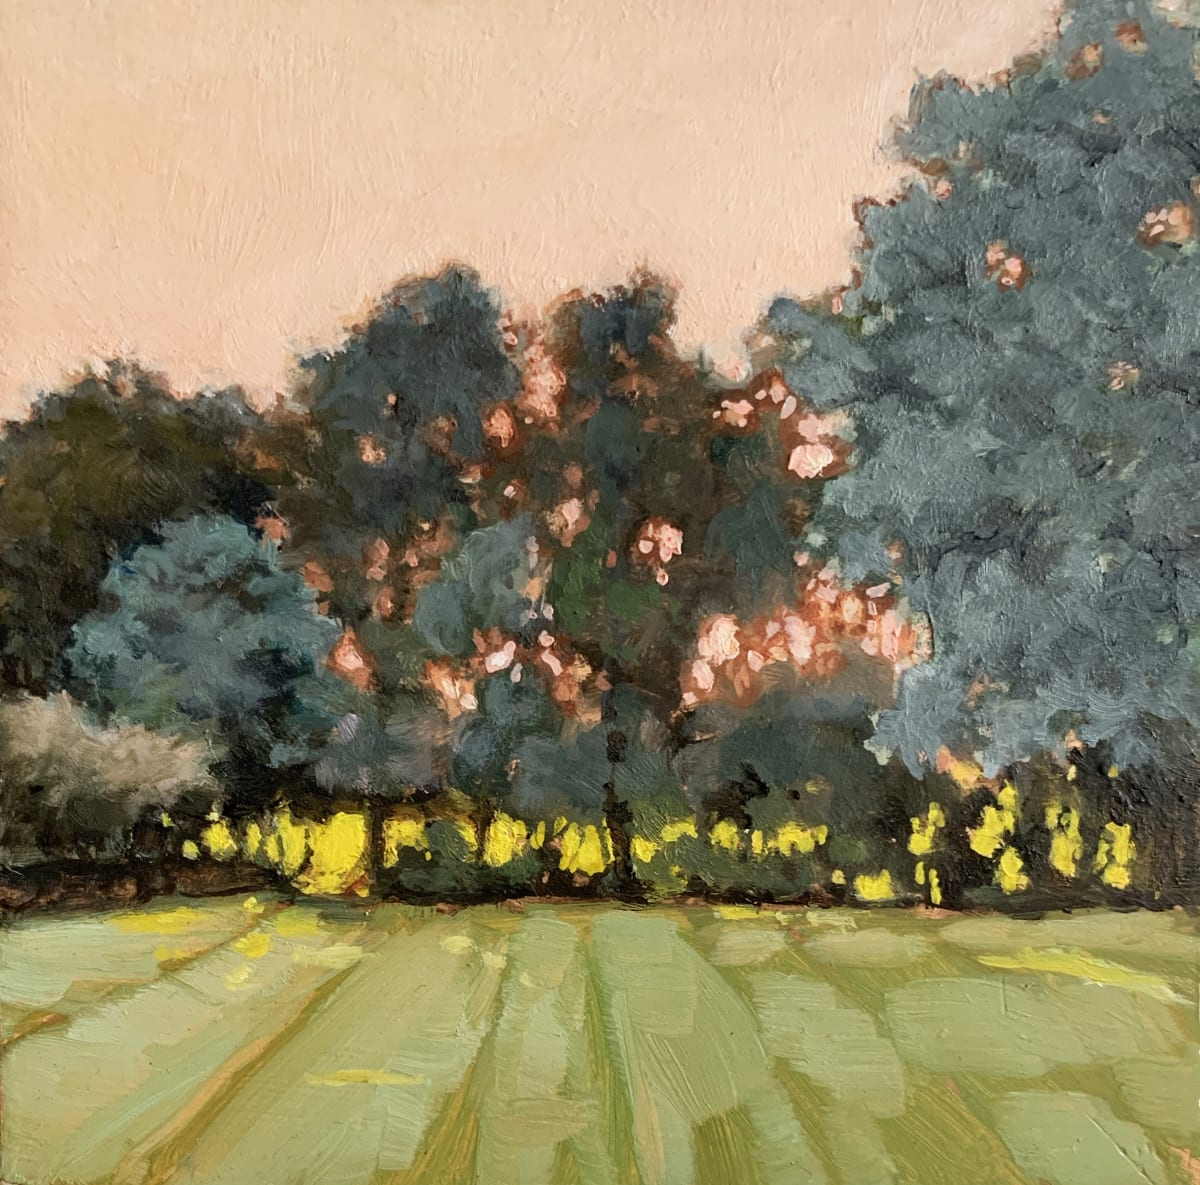 Sally Maca, Through the Hedges, 2019